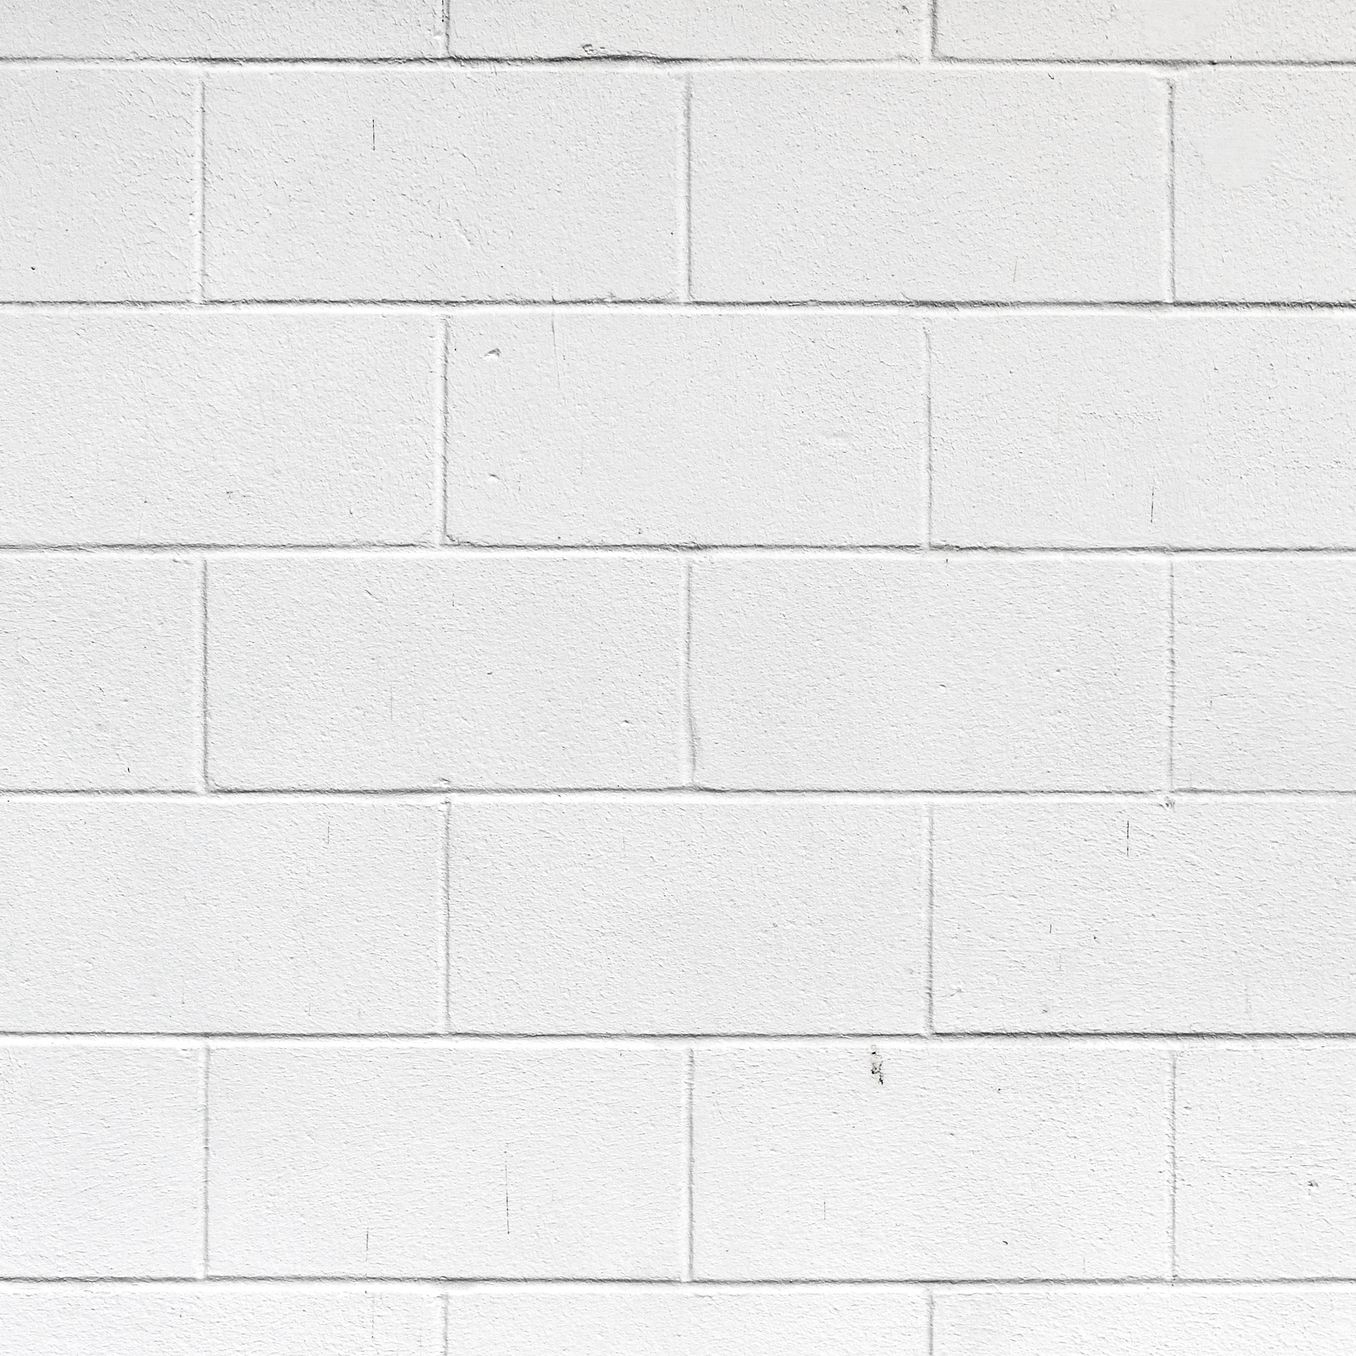 7 Ways To Attach Things To Cinder Block Walls